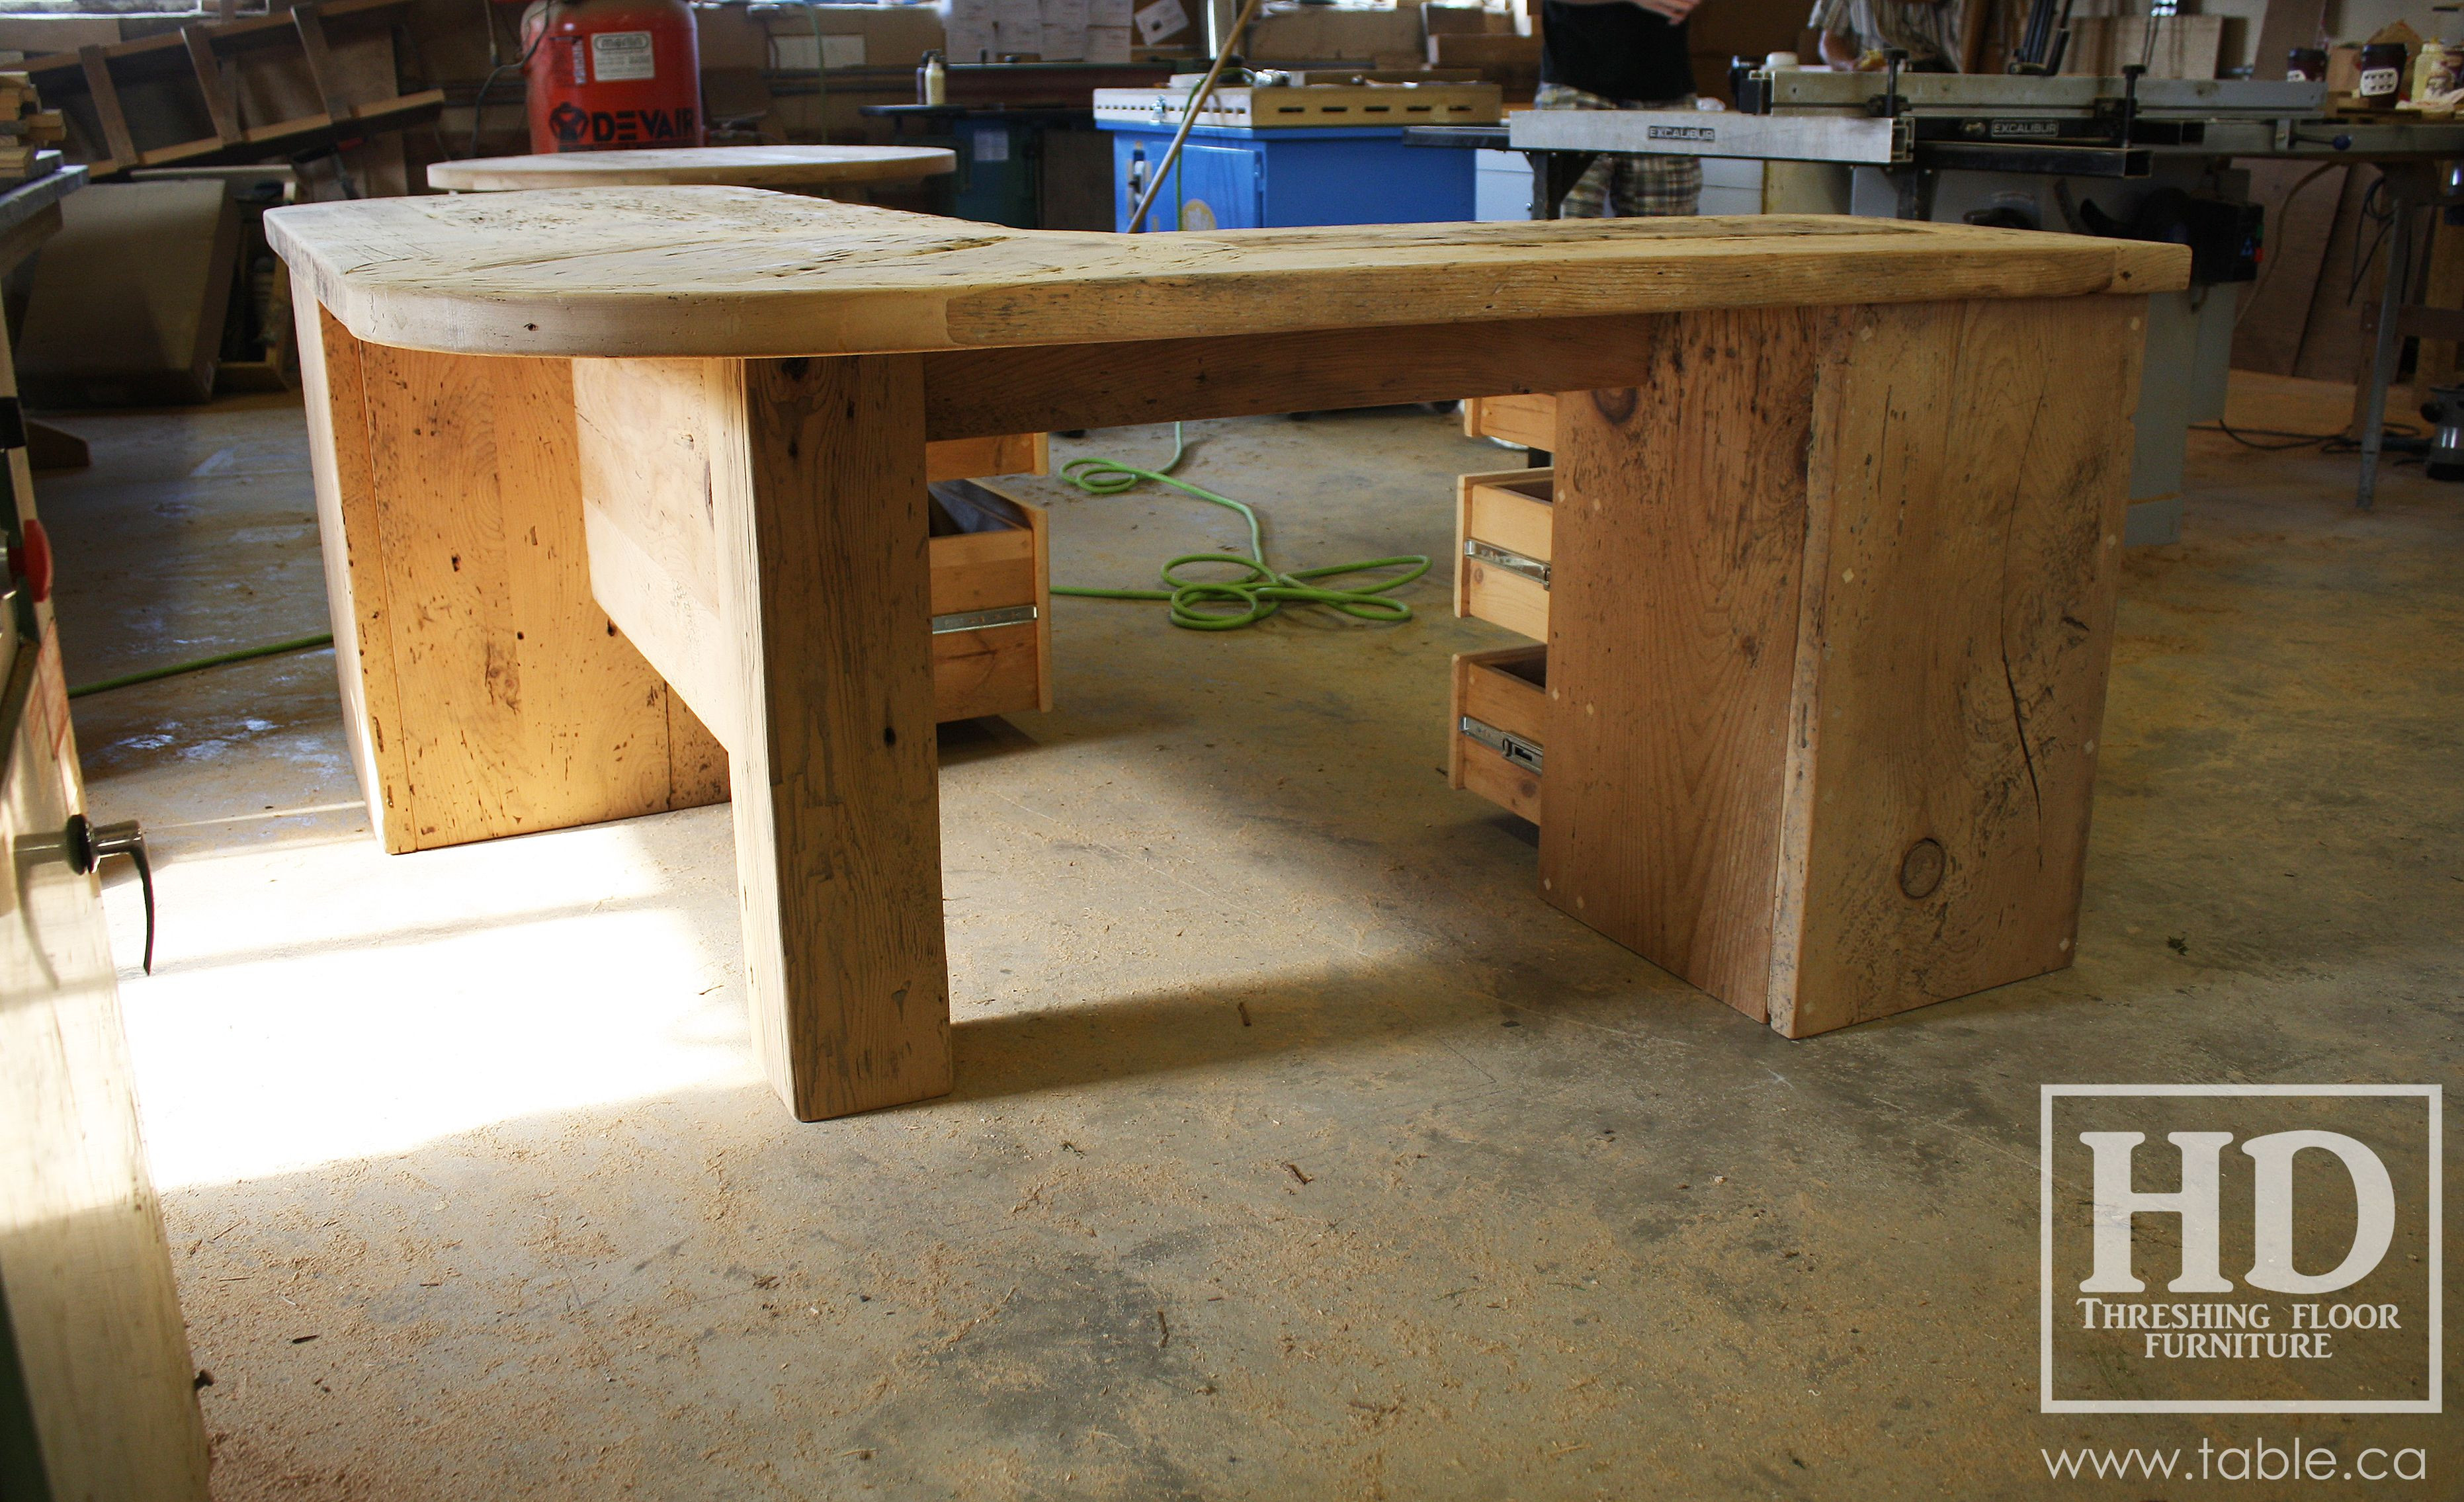 hardwood flooring ontario of reclaimed wood desk by hd threshing floor furniture of cambridge with regard to reclaimed wood desk by hd threshing floor furniture of cambridge ontario see our website